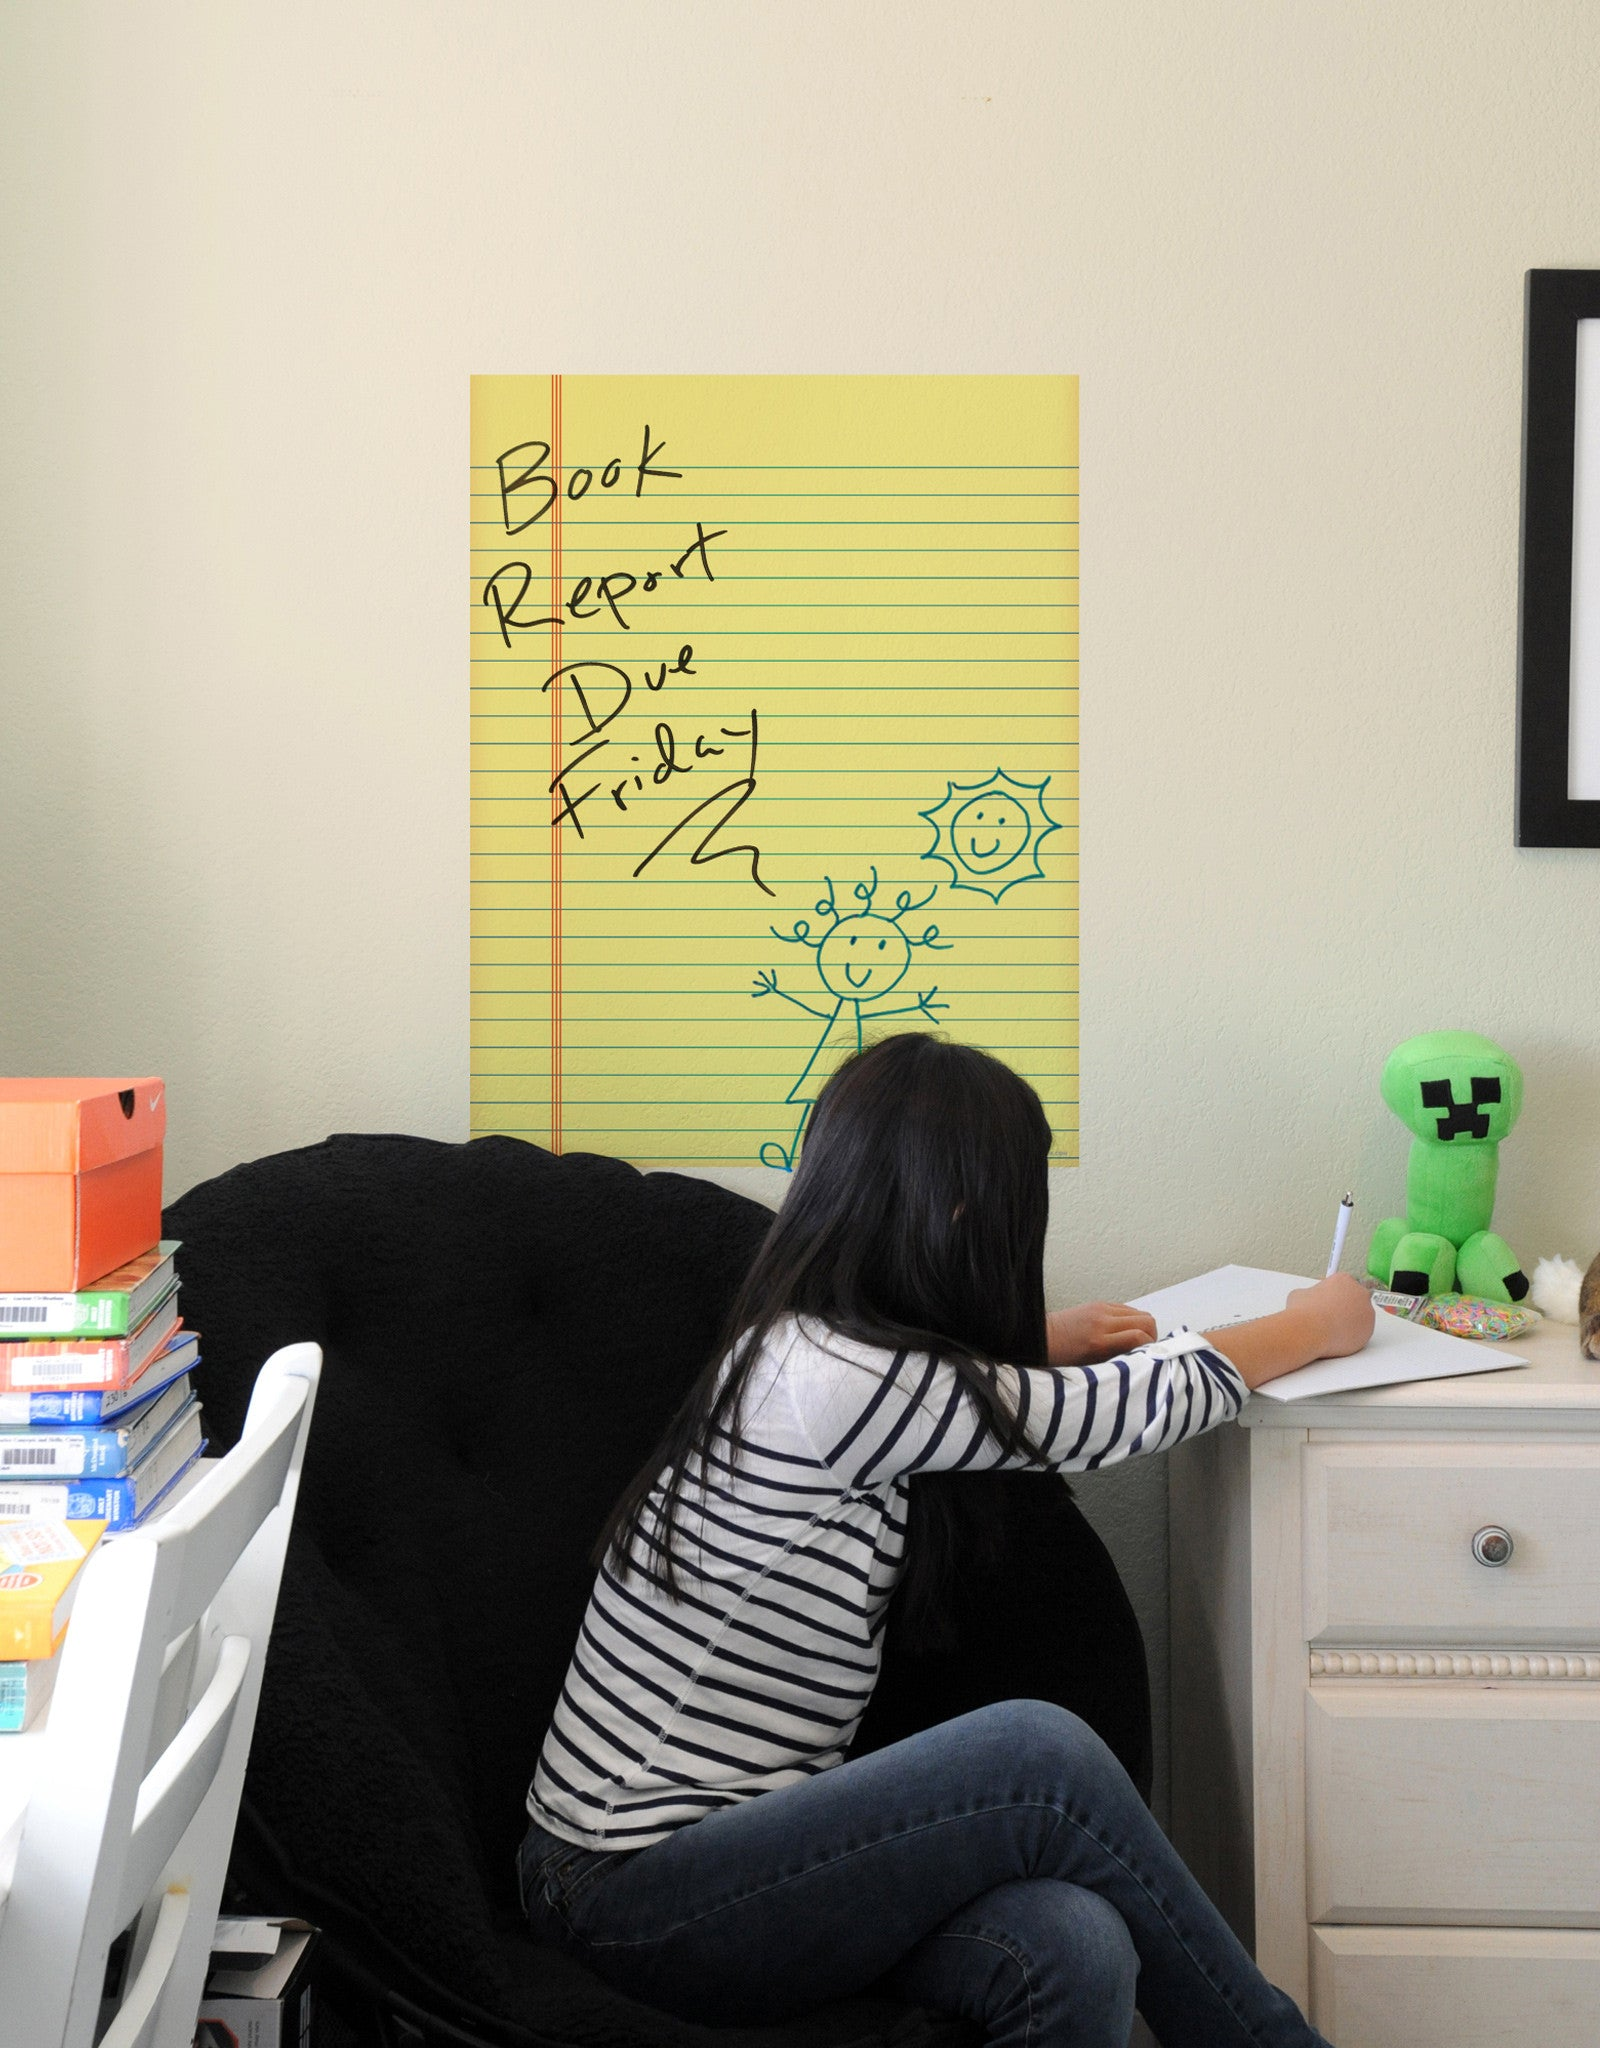 Yellow Pad Dry Erase Board Sticker | Notepad Dry Erase Decal – Blik